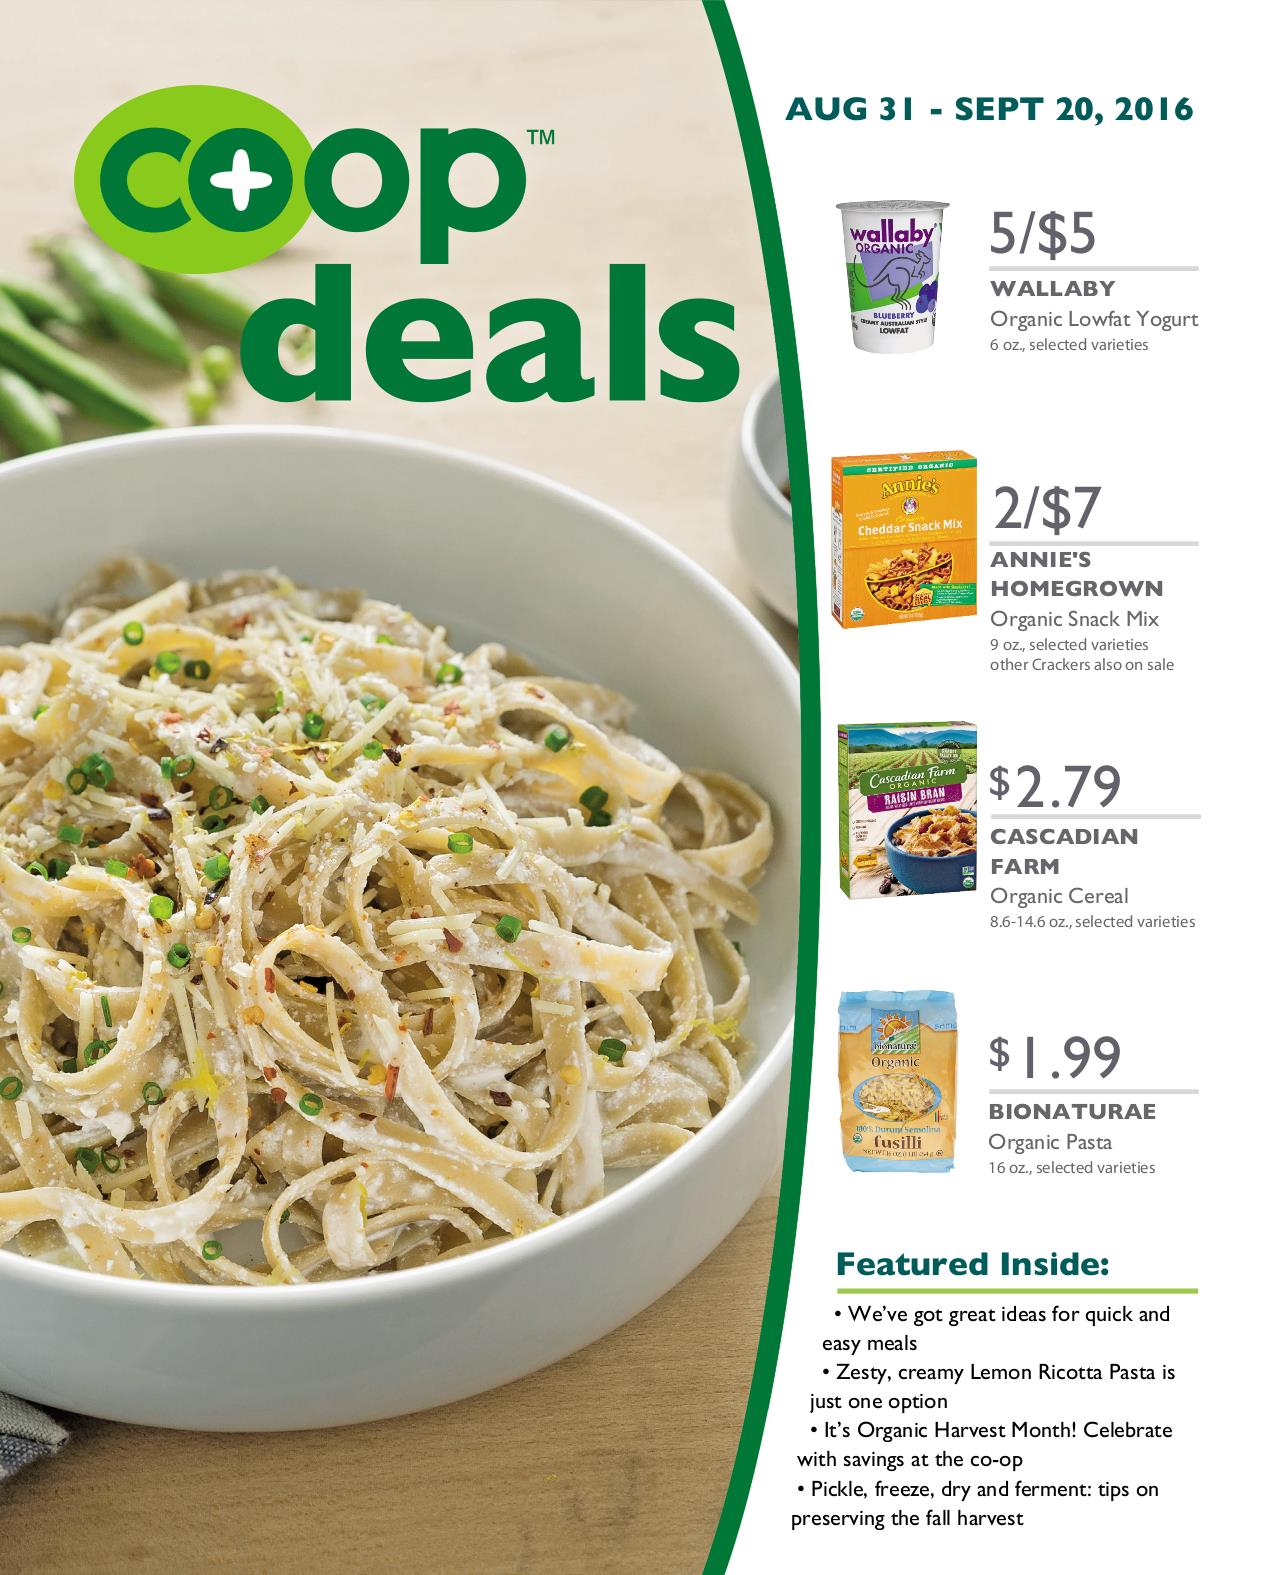 Co+op_Deals_Sep_2016_Flyer_East_Zone_1_2_3_A_Page_1